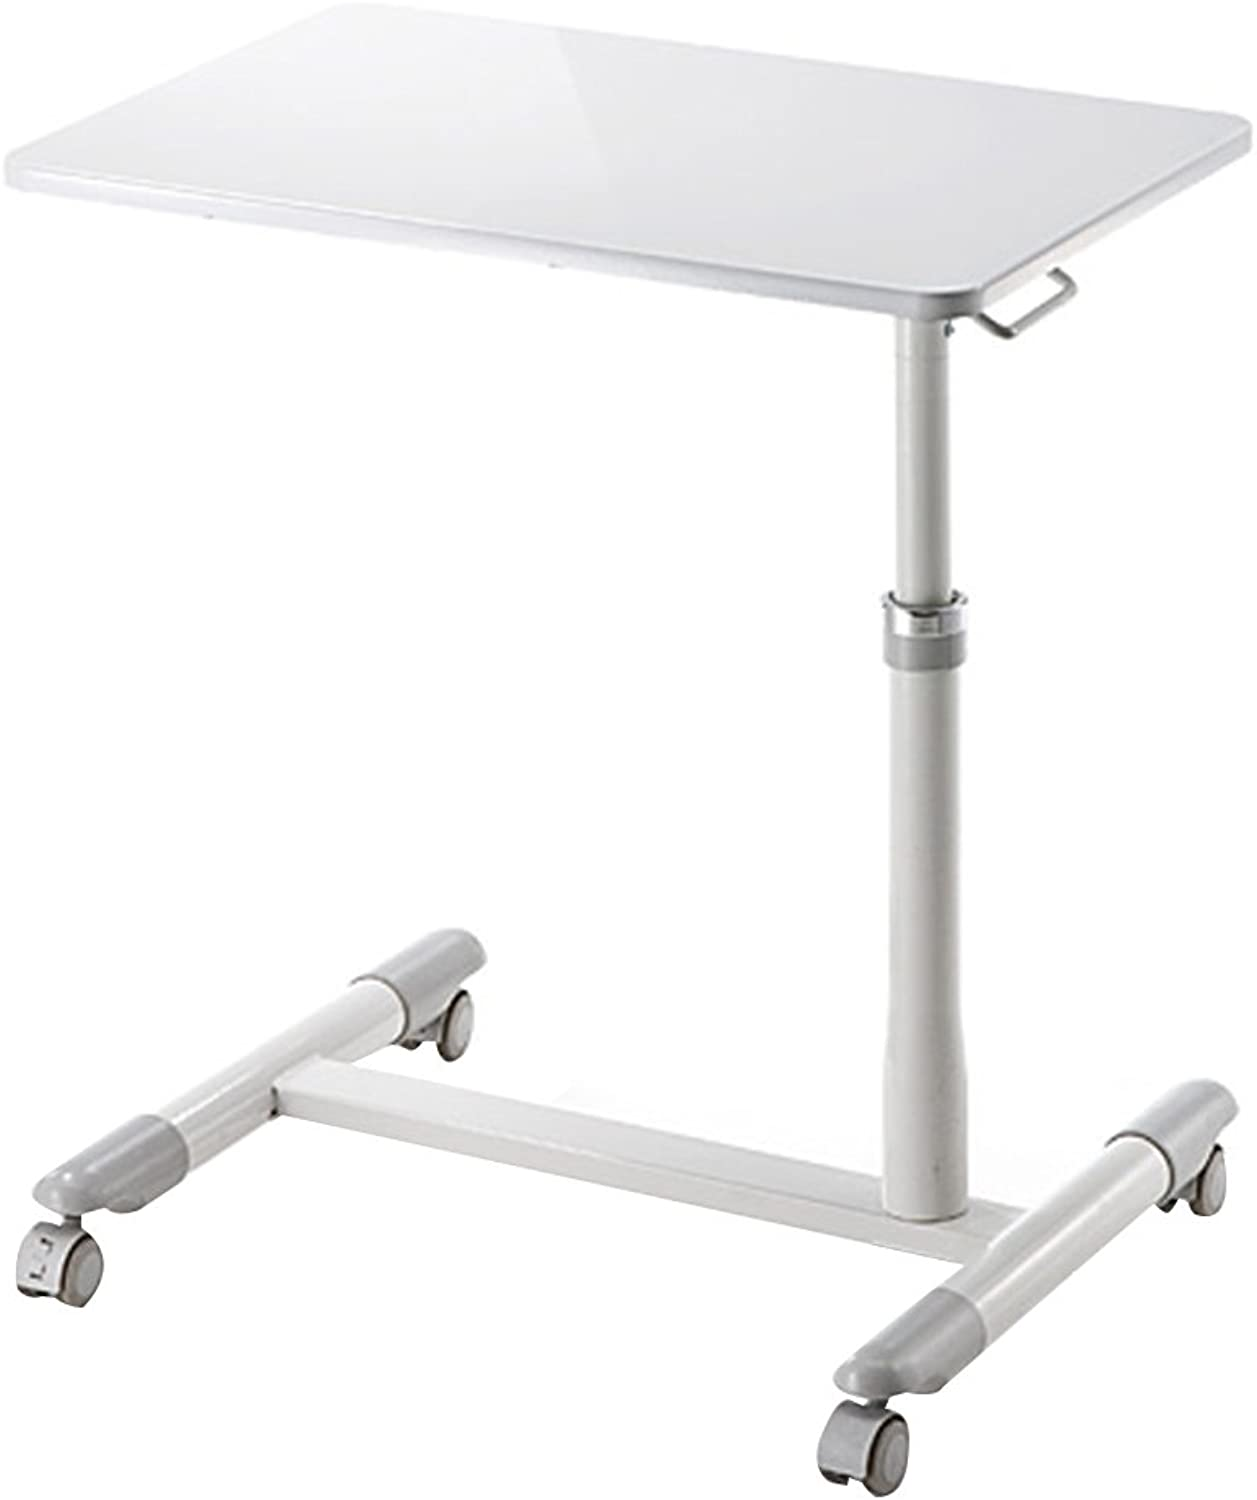 White Folding Dinning Table Environmentally Friendly Sheet Wall-Mounted Drop-Leaf Learning Desk Study (Size   70x50cm)